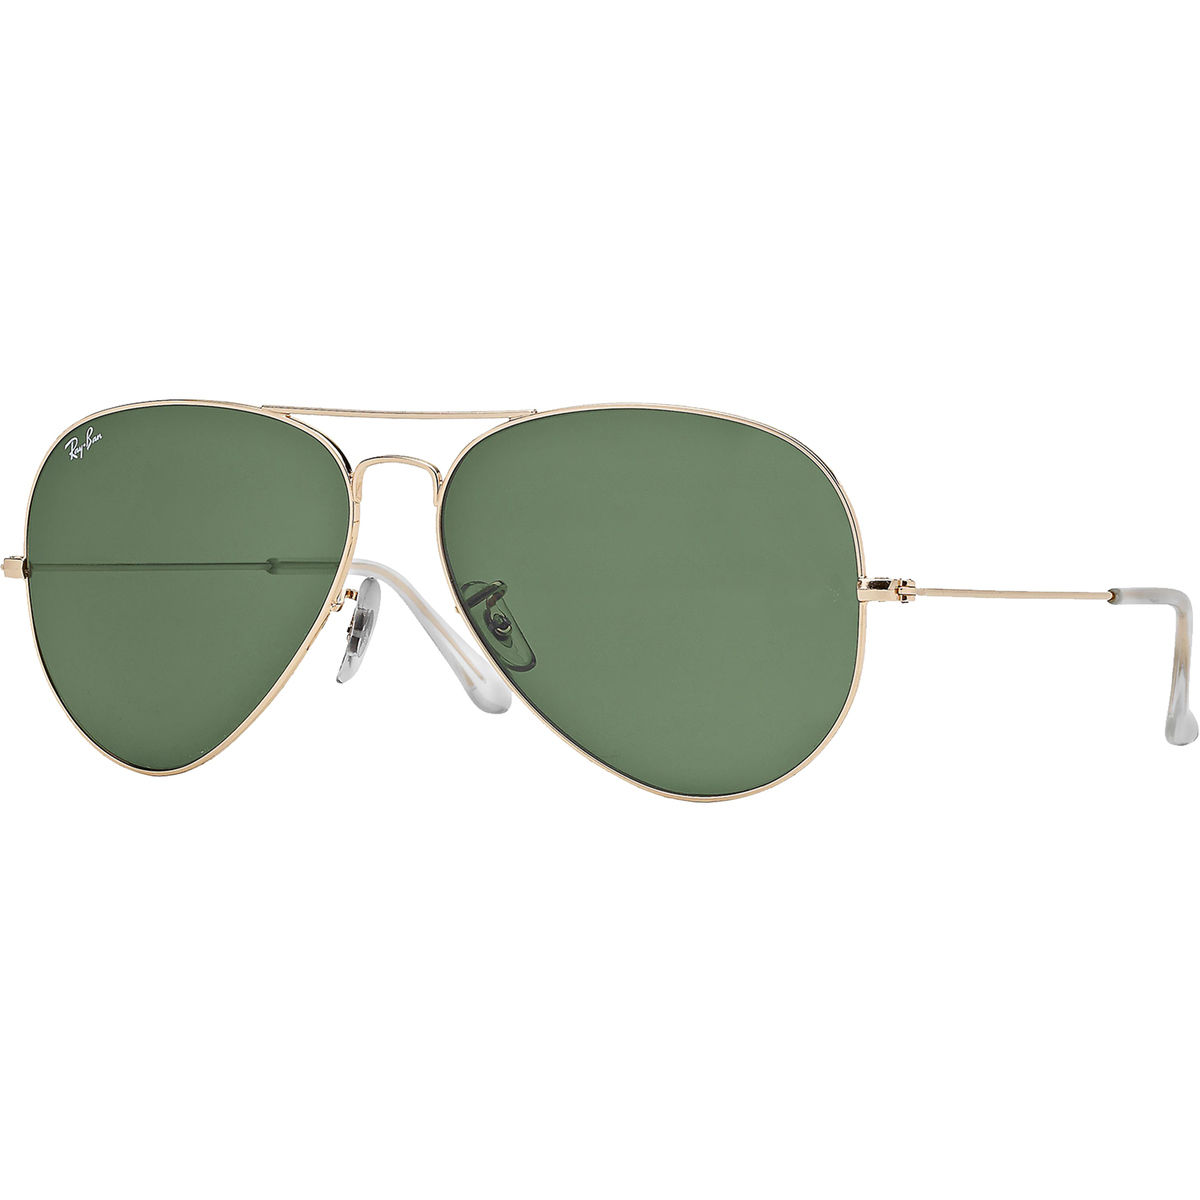 c94ee2a770501 Ray-Ban Aviator Sunglasses - Gold Green - 0RB302500162